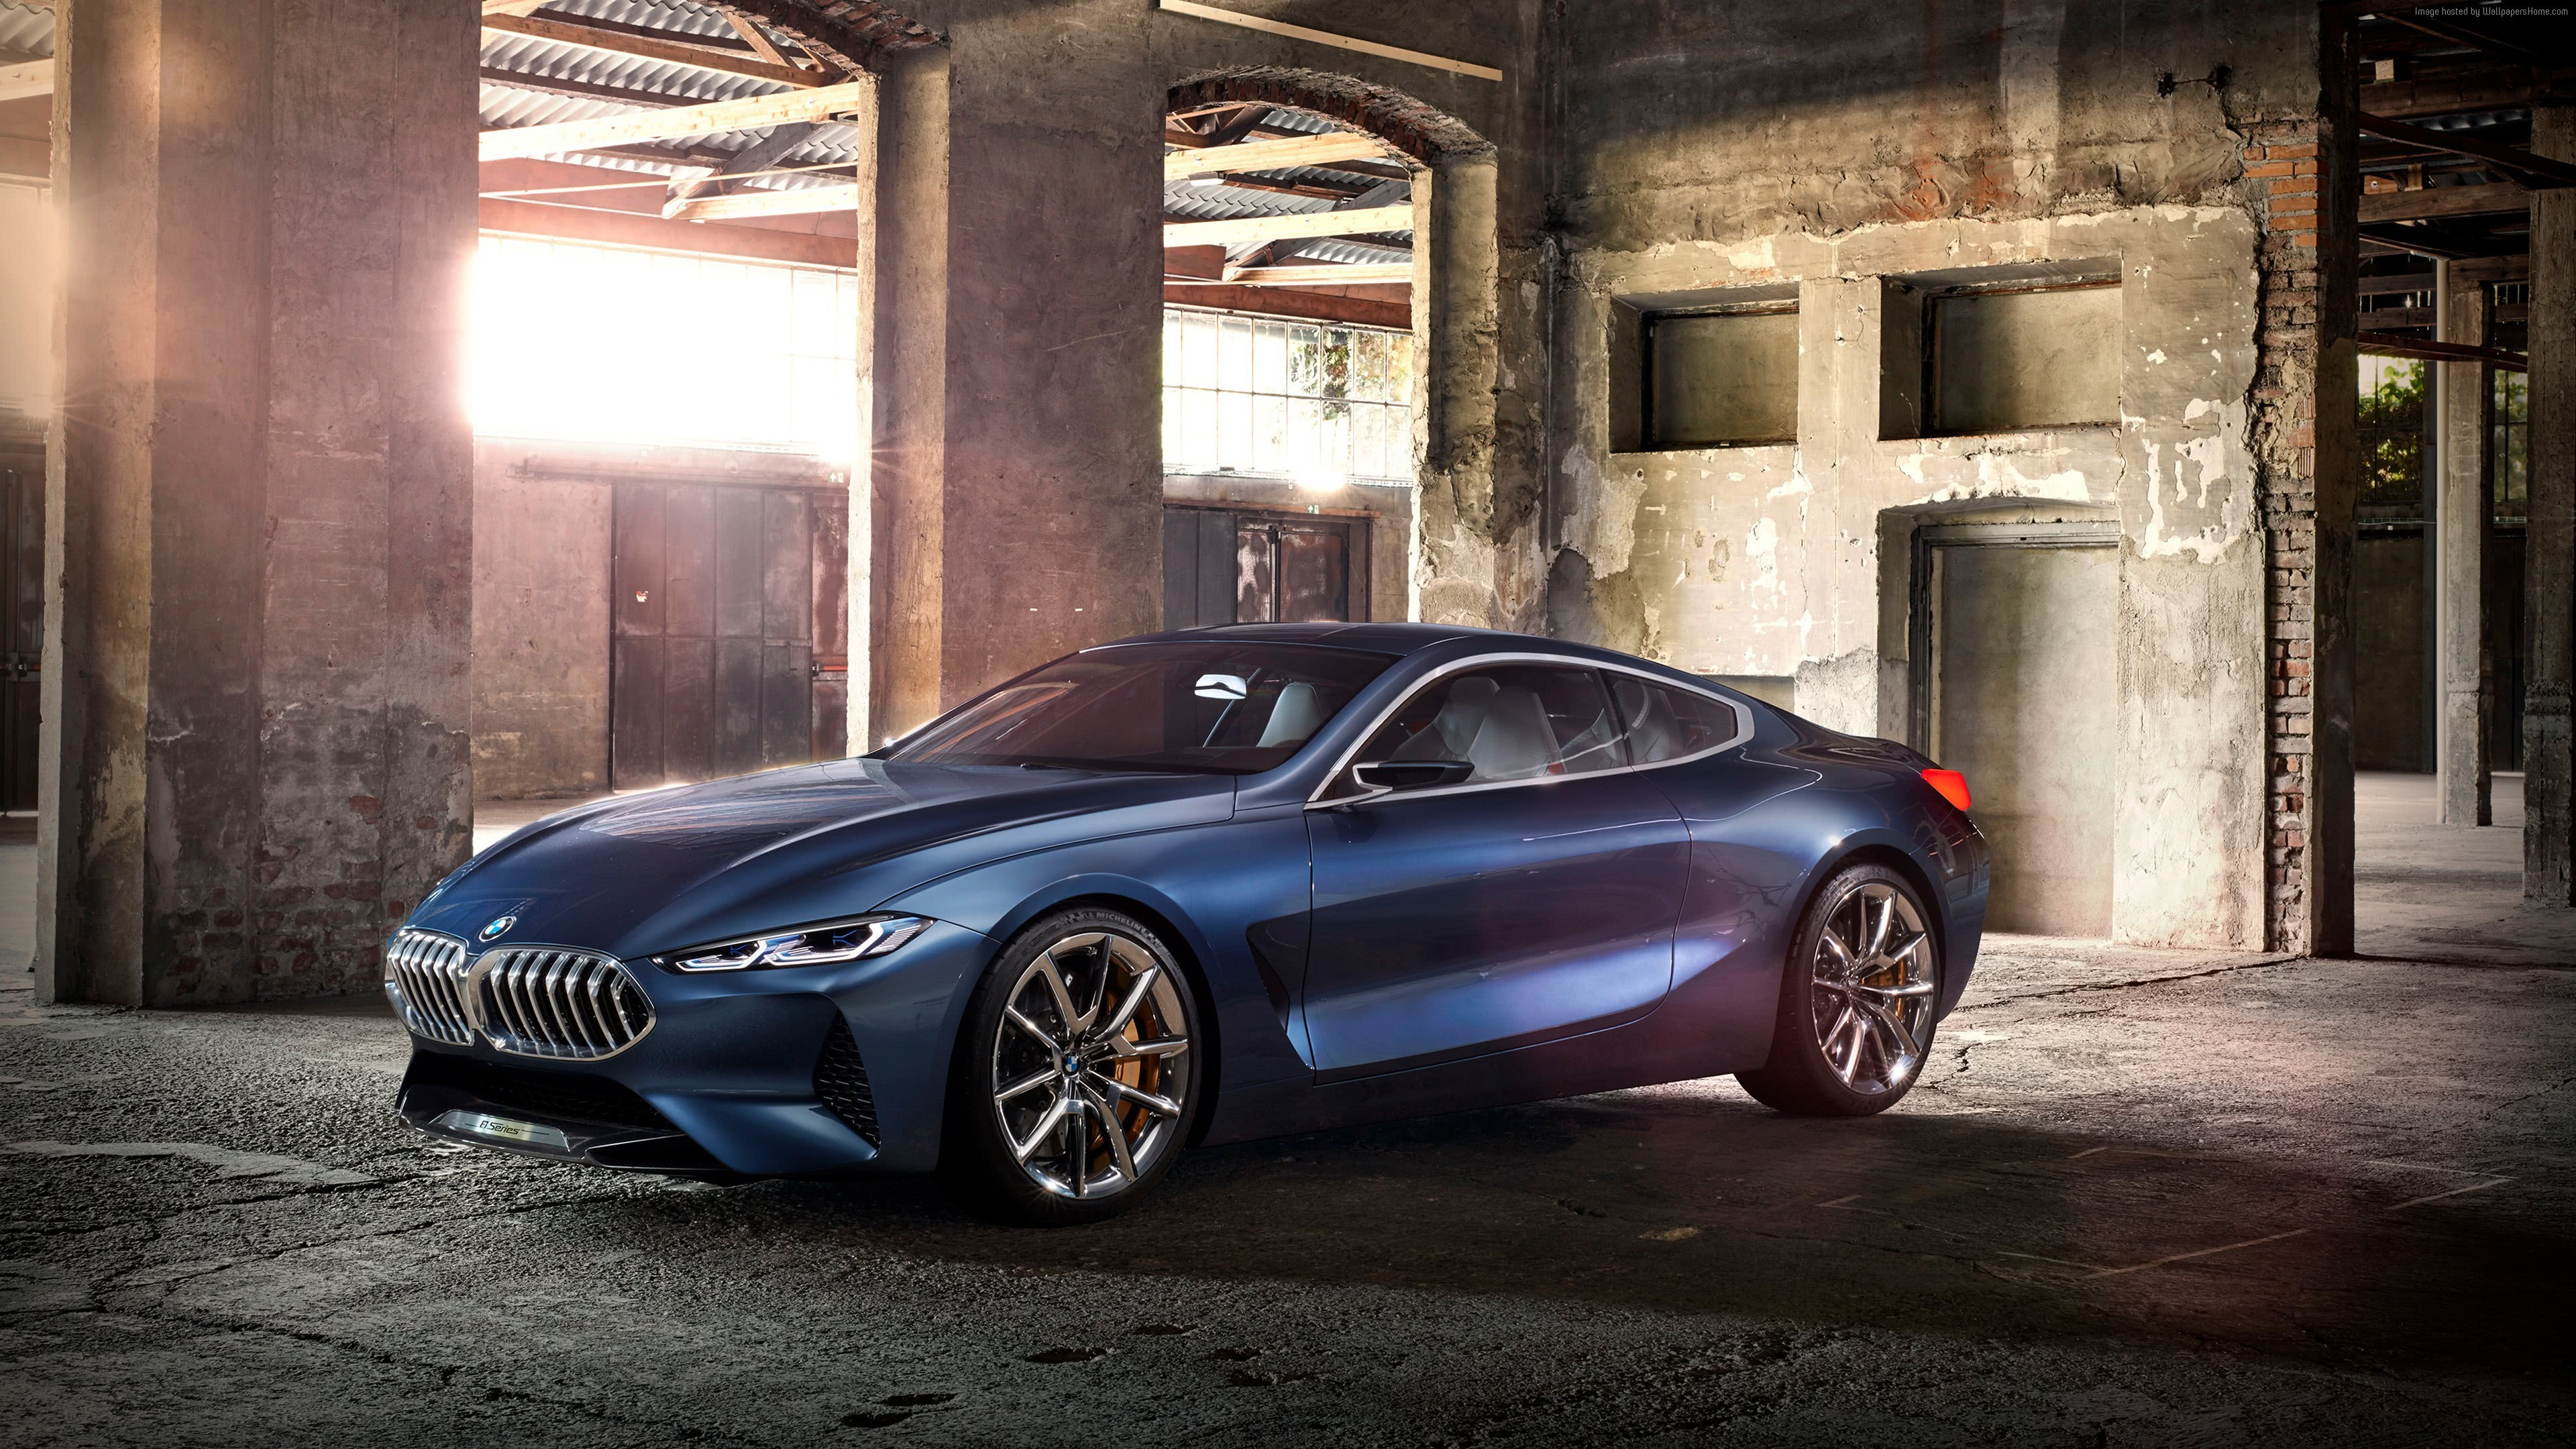 BMW 8 Series Gran Coupe UHD 4K Wallpapers